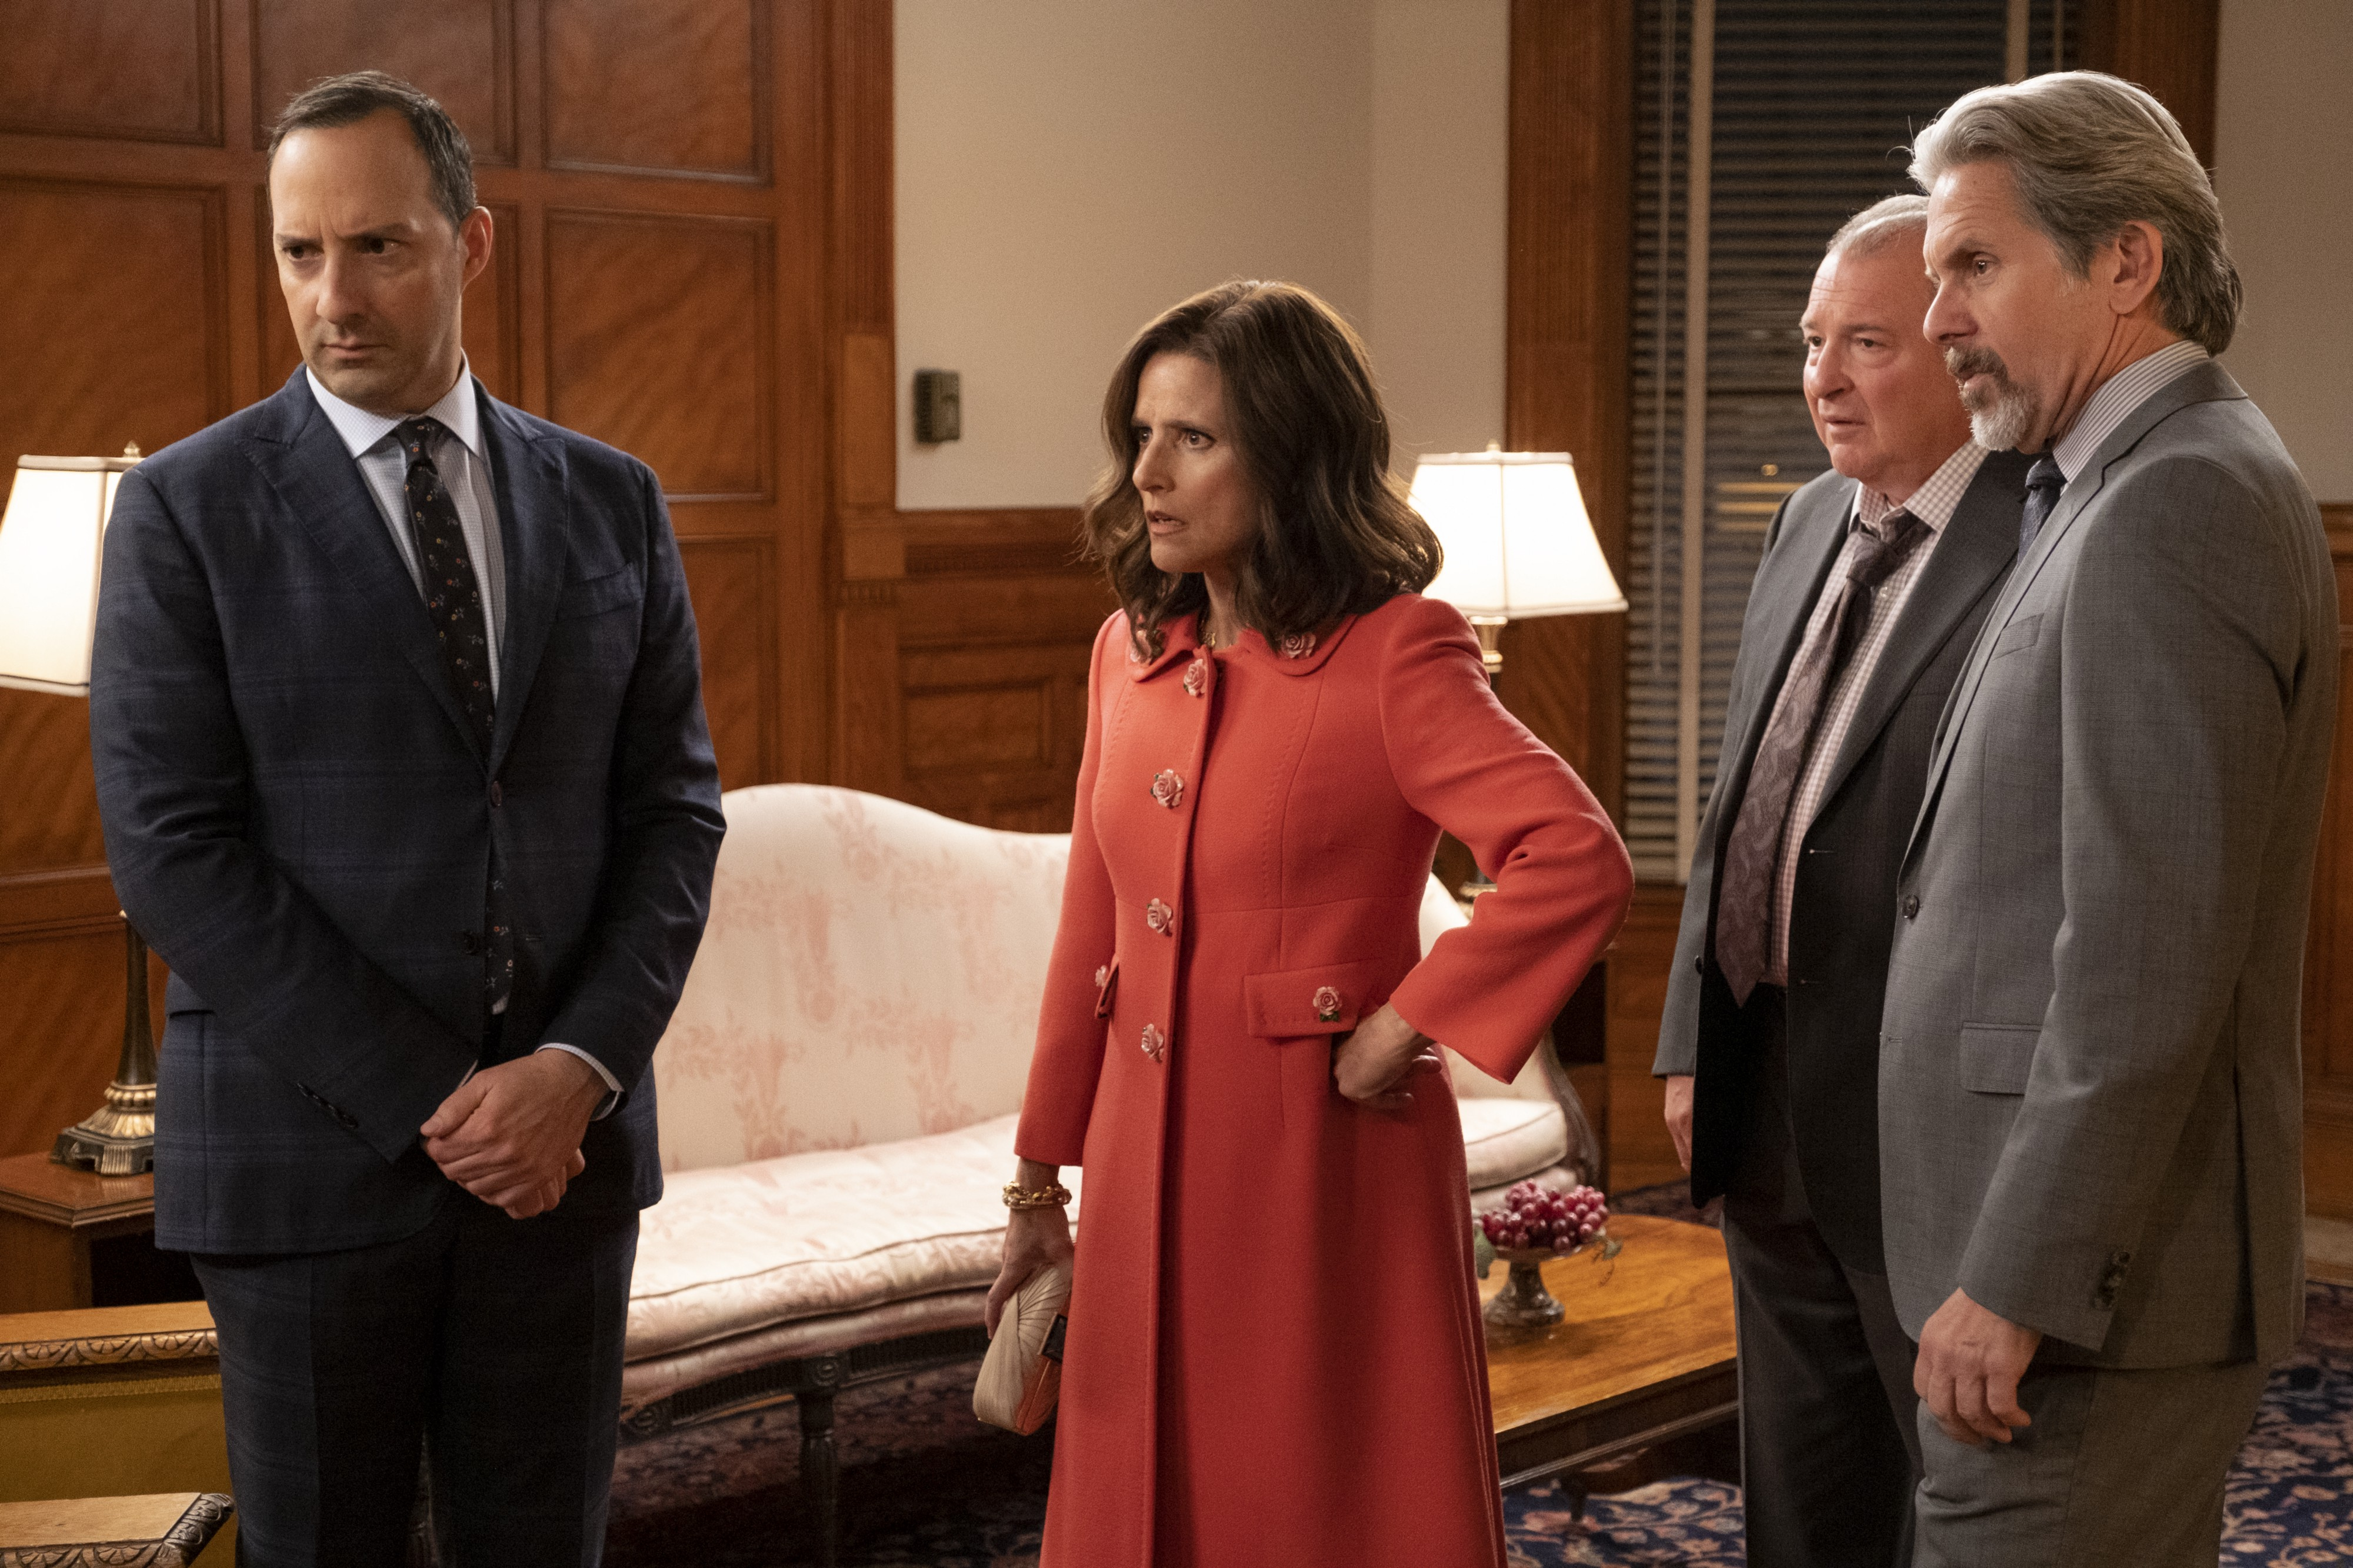 Emmy®-Winning HBO Comedy Series VEEP, Starring Emmy® Winner